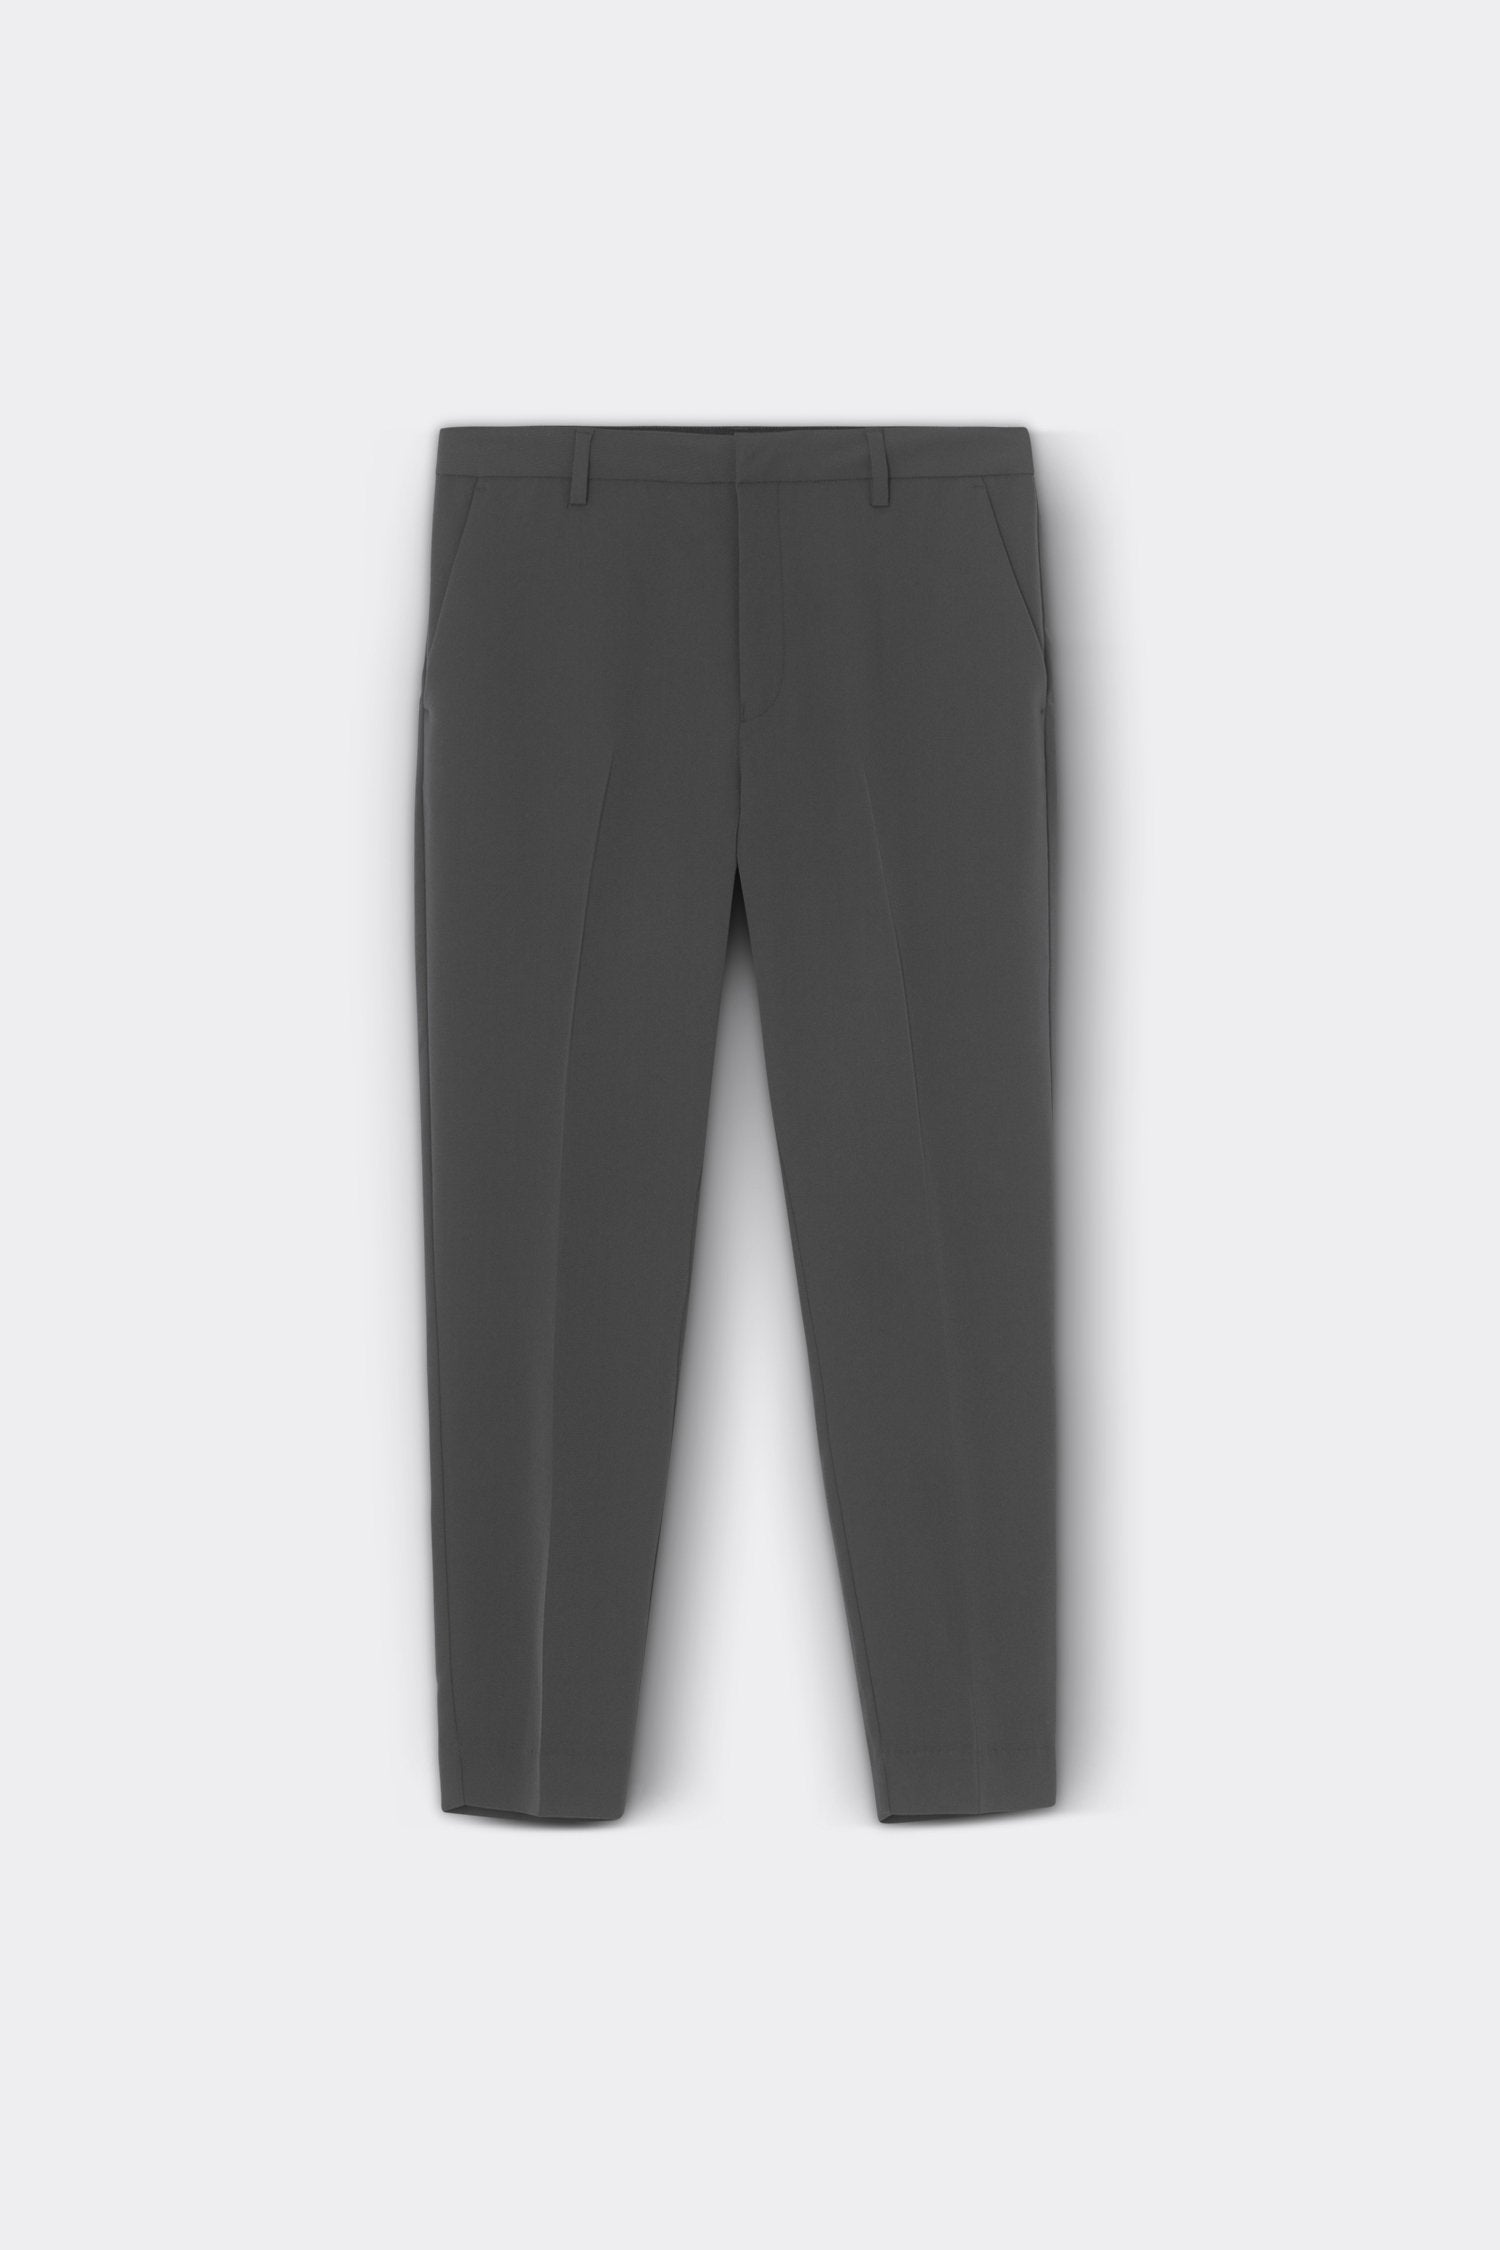 Whyred Blue Trousers Black